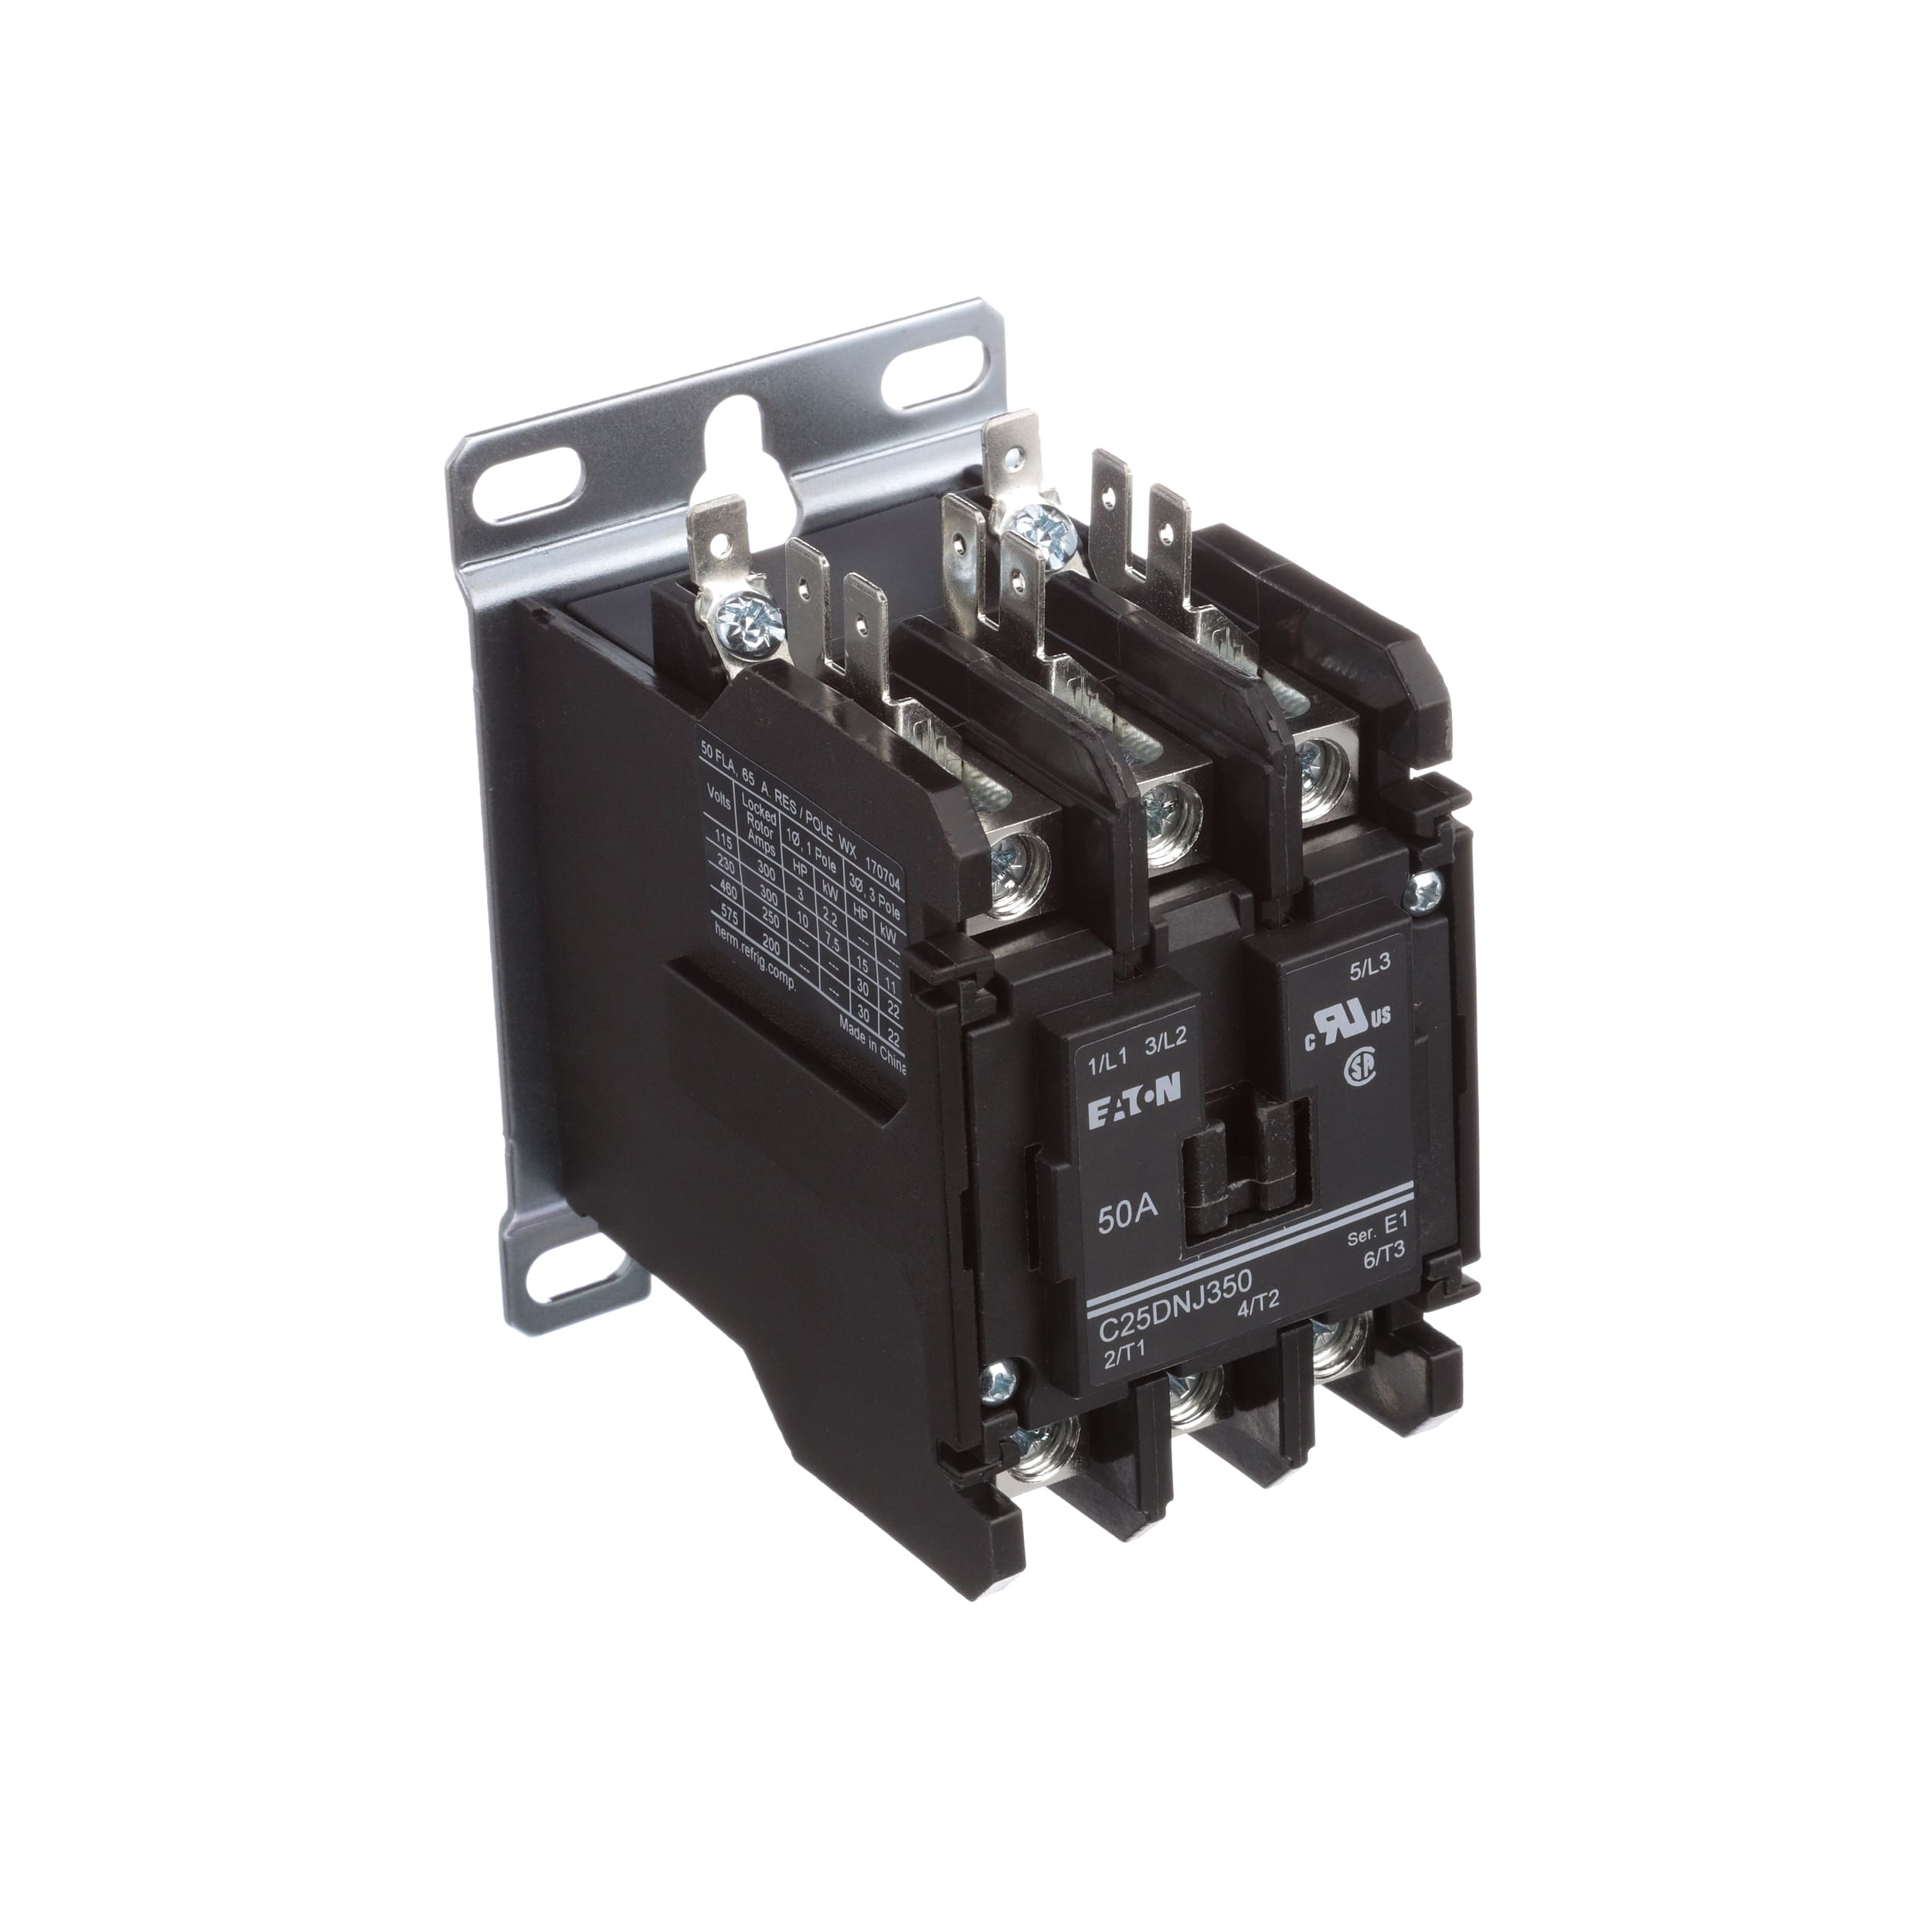 Eaton Cutler Hammer C25dnj350b Contactor Dp 3 Pole 50a Dc Circuit Breaker Toggle Style 240vac Coil Allied Electronics Automation